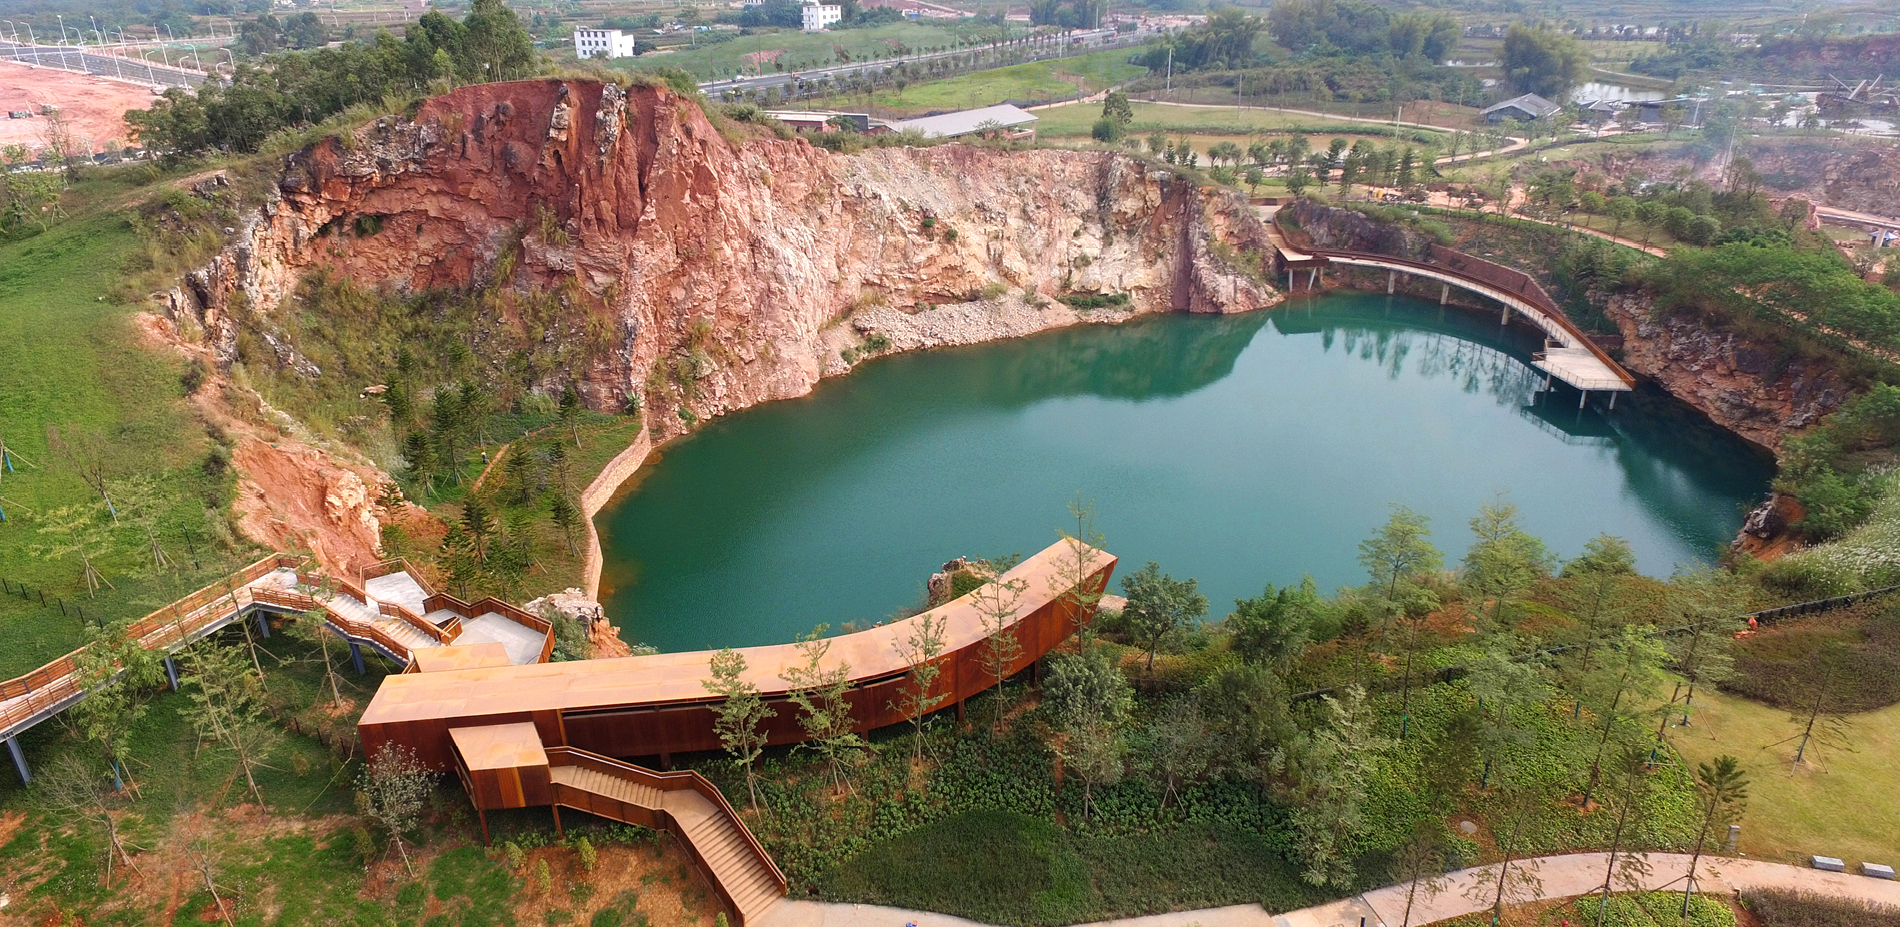 Enjoying Landscape of Jade Pond and Steep Cliff (Quarry No. 4)